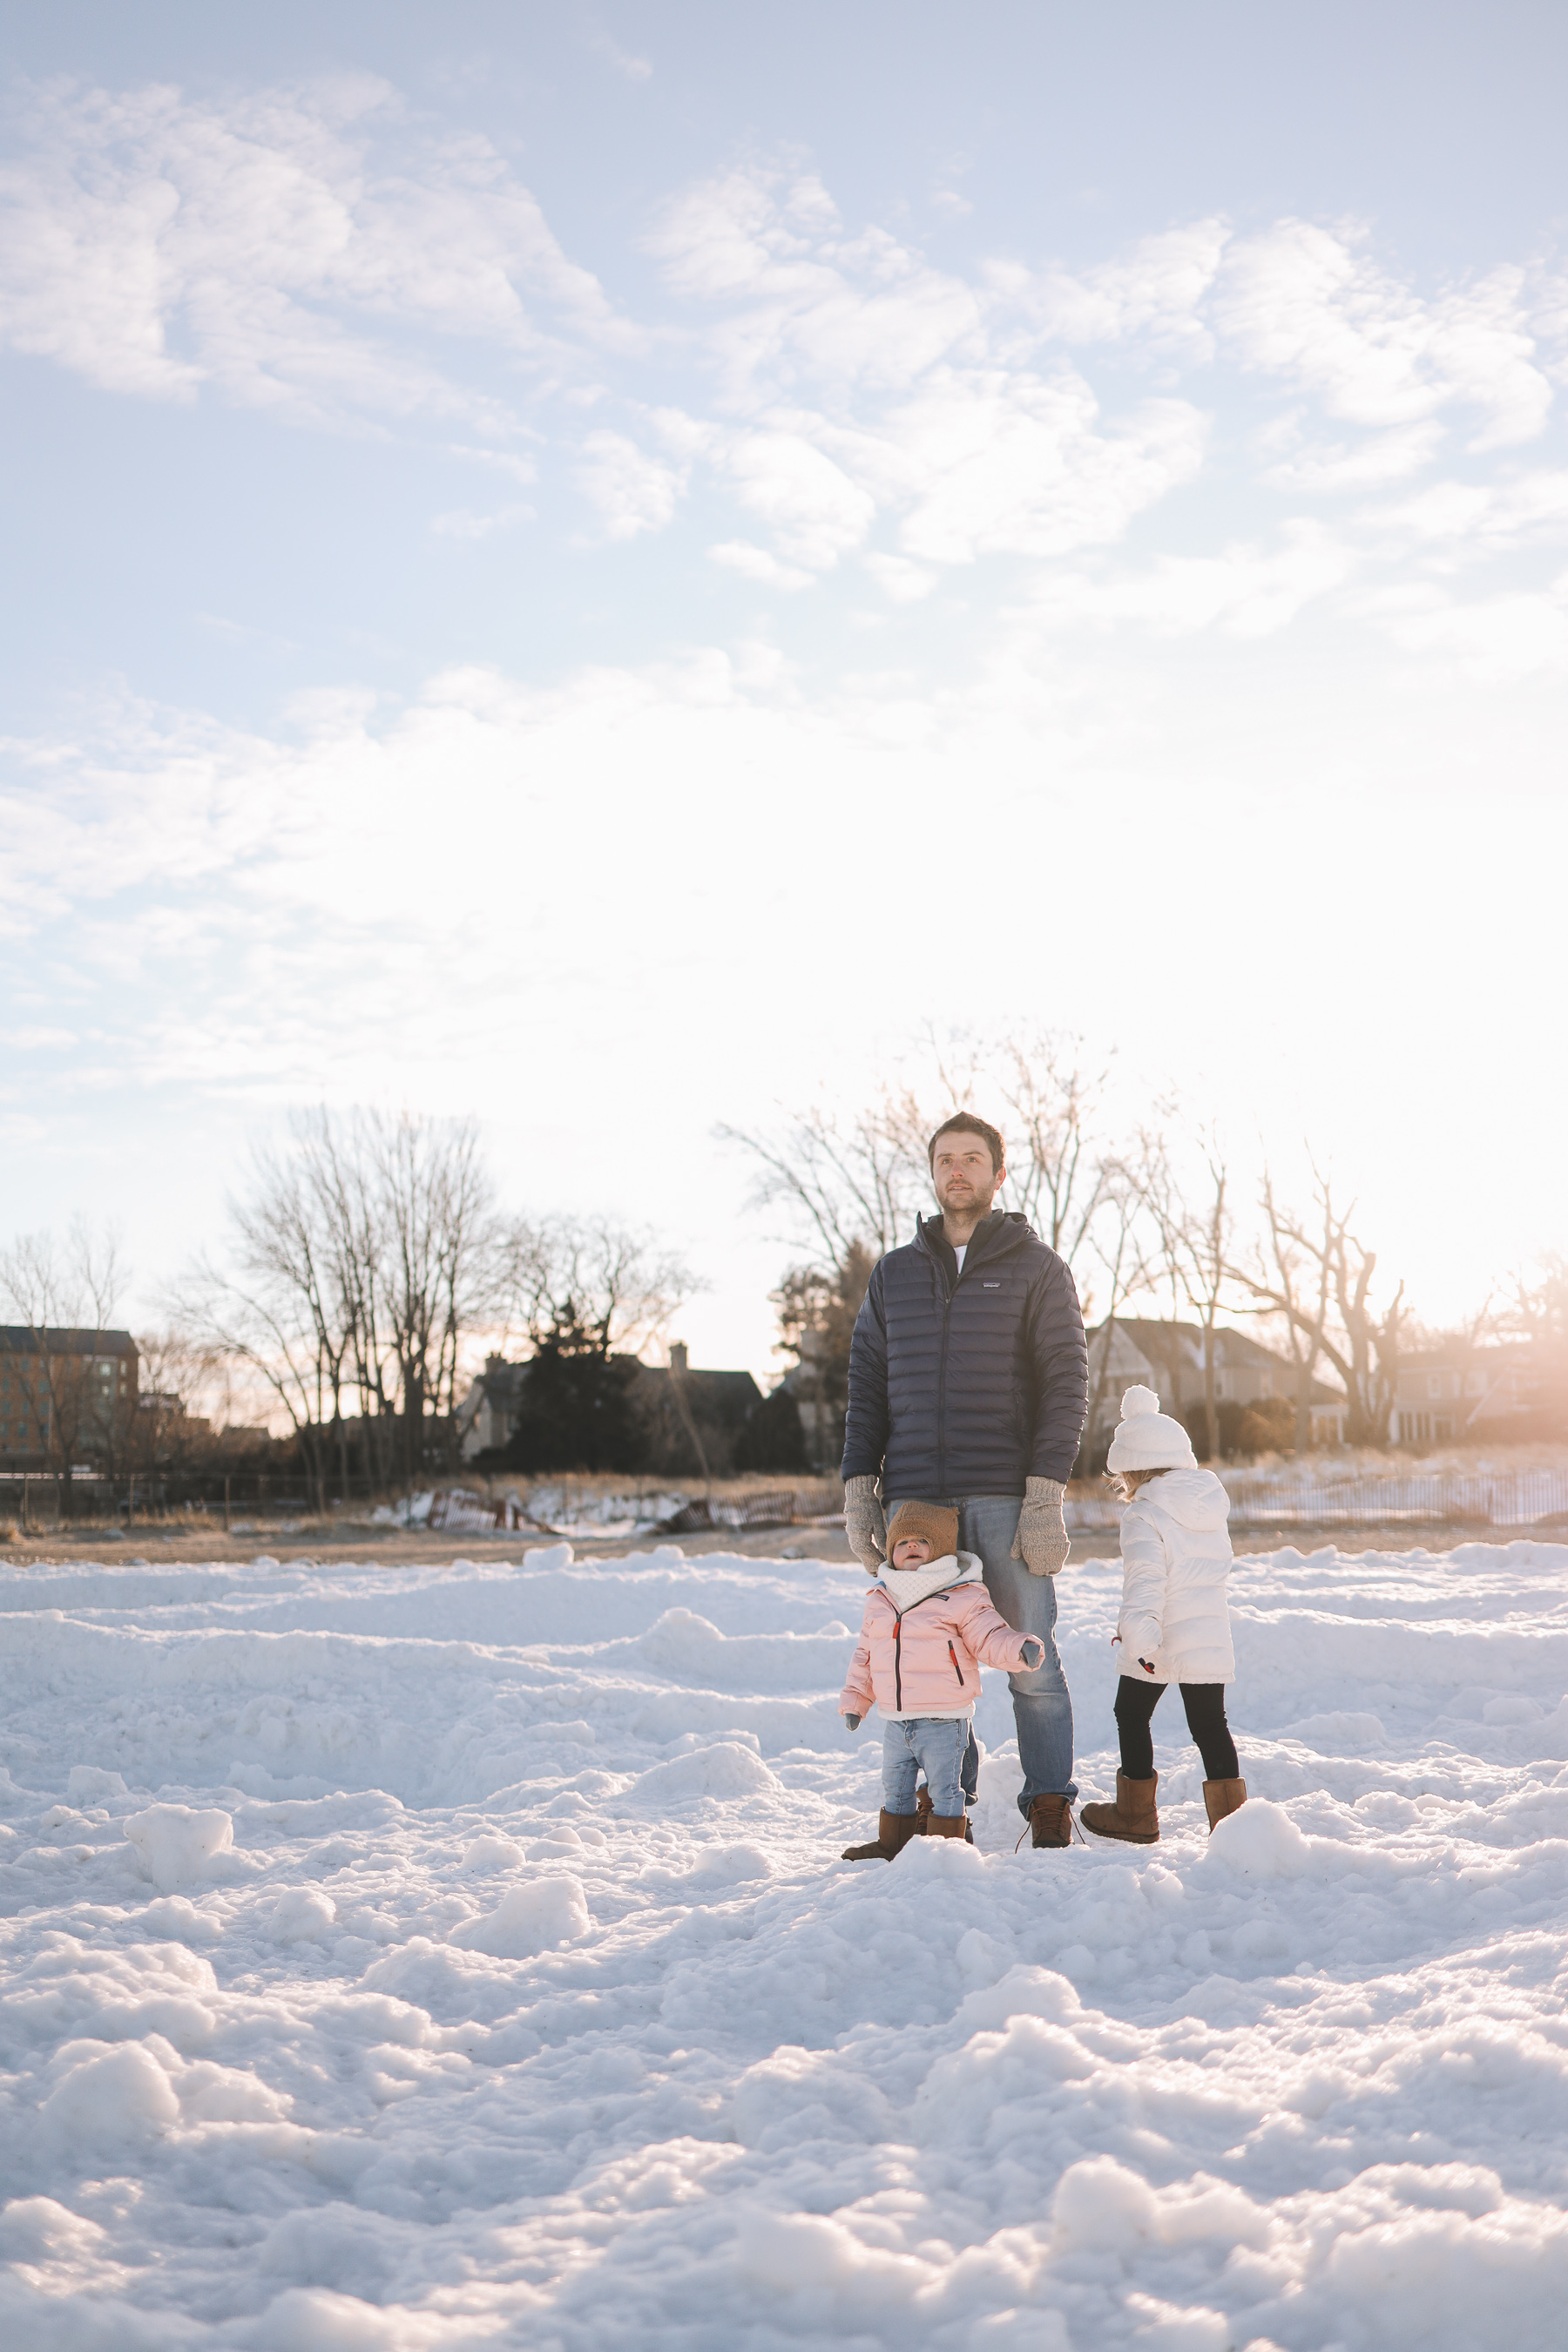 Backcountry baby winter gear | Lighthouse Beach Evanston